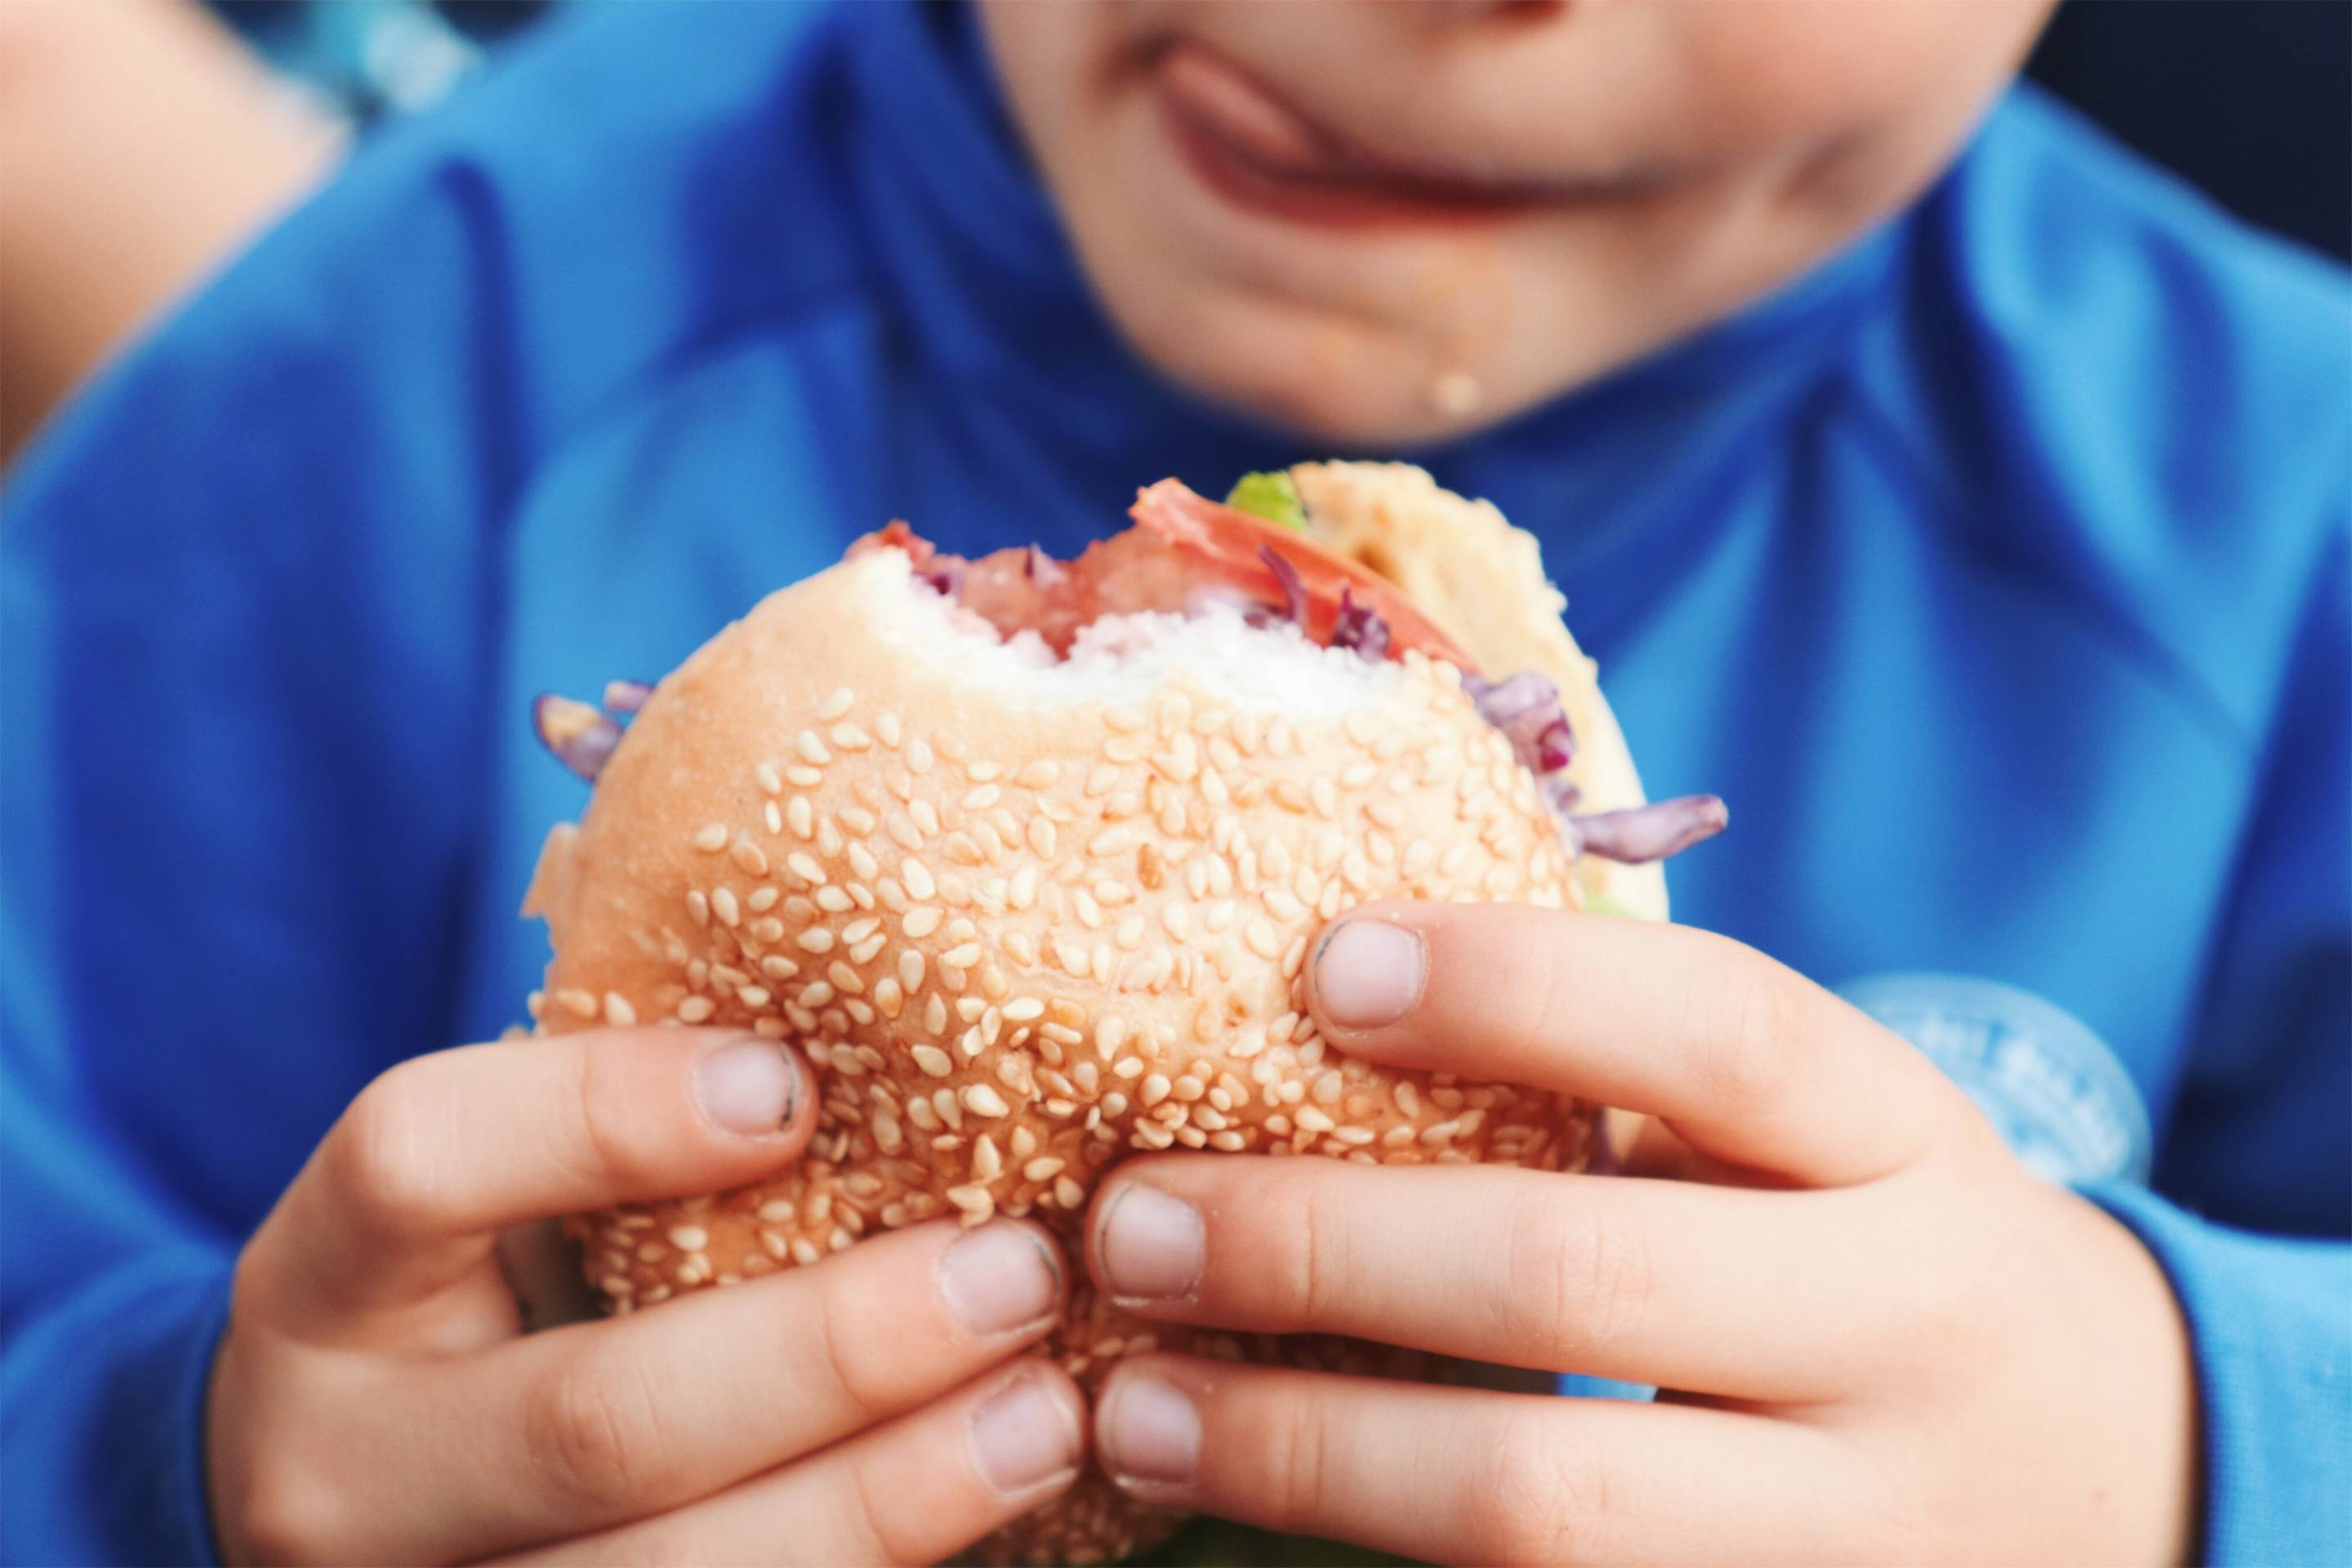 Midsection Of Boy Holding Burger